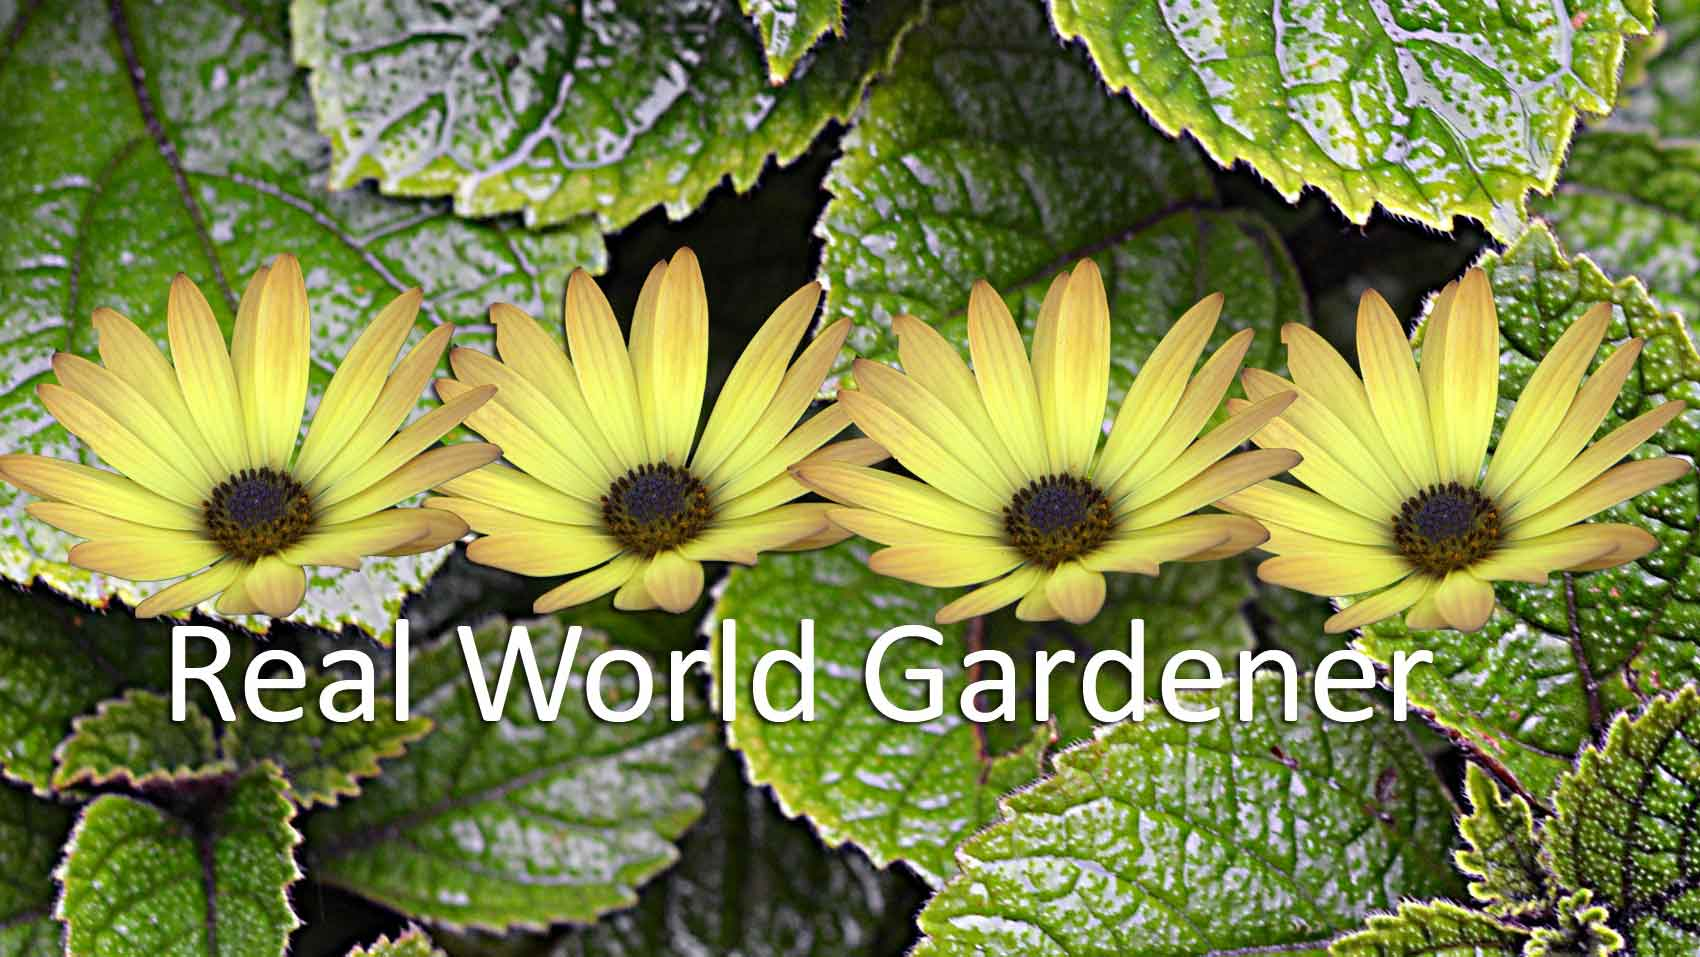 Real World Gardener Design Elements and Plants That Don't Grow At Your Place